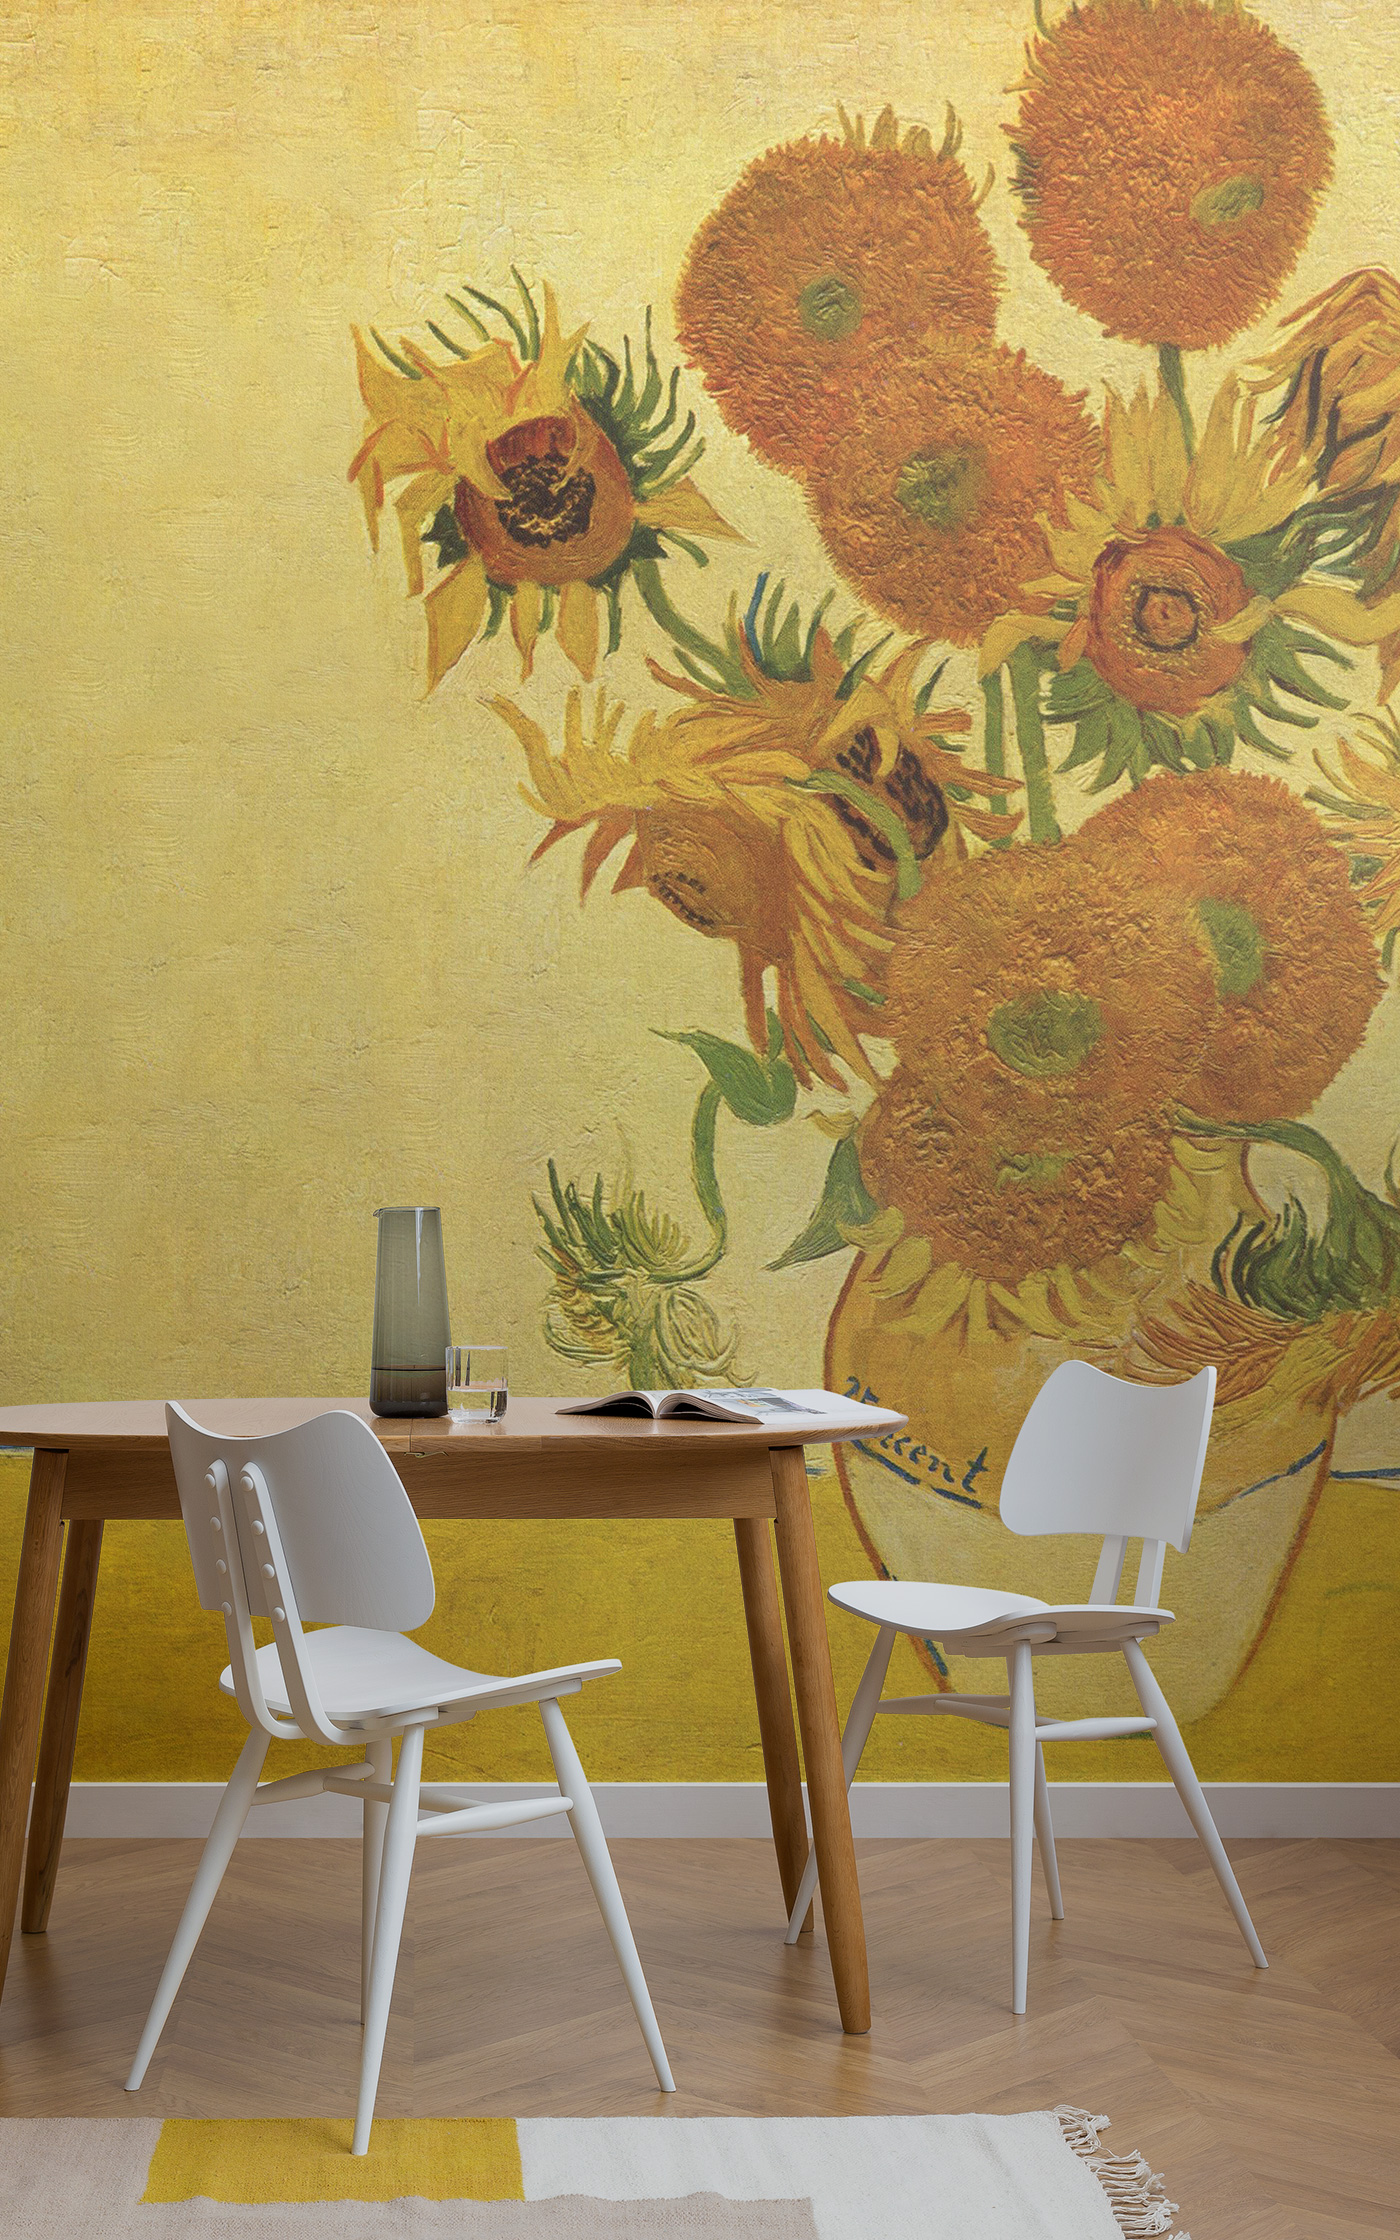 Sunflowers-Lifestyle-Web.jpg